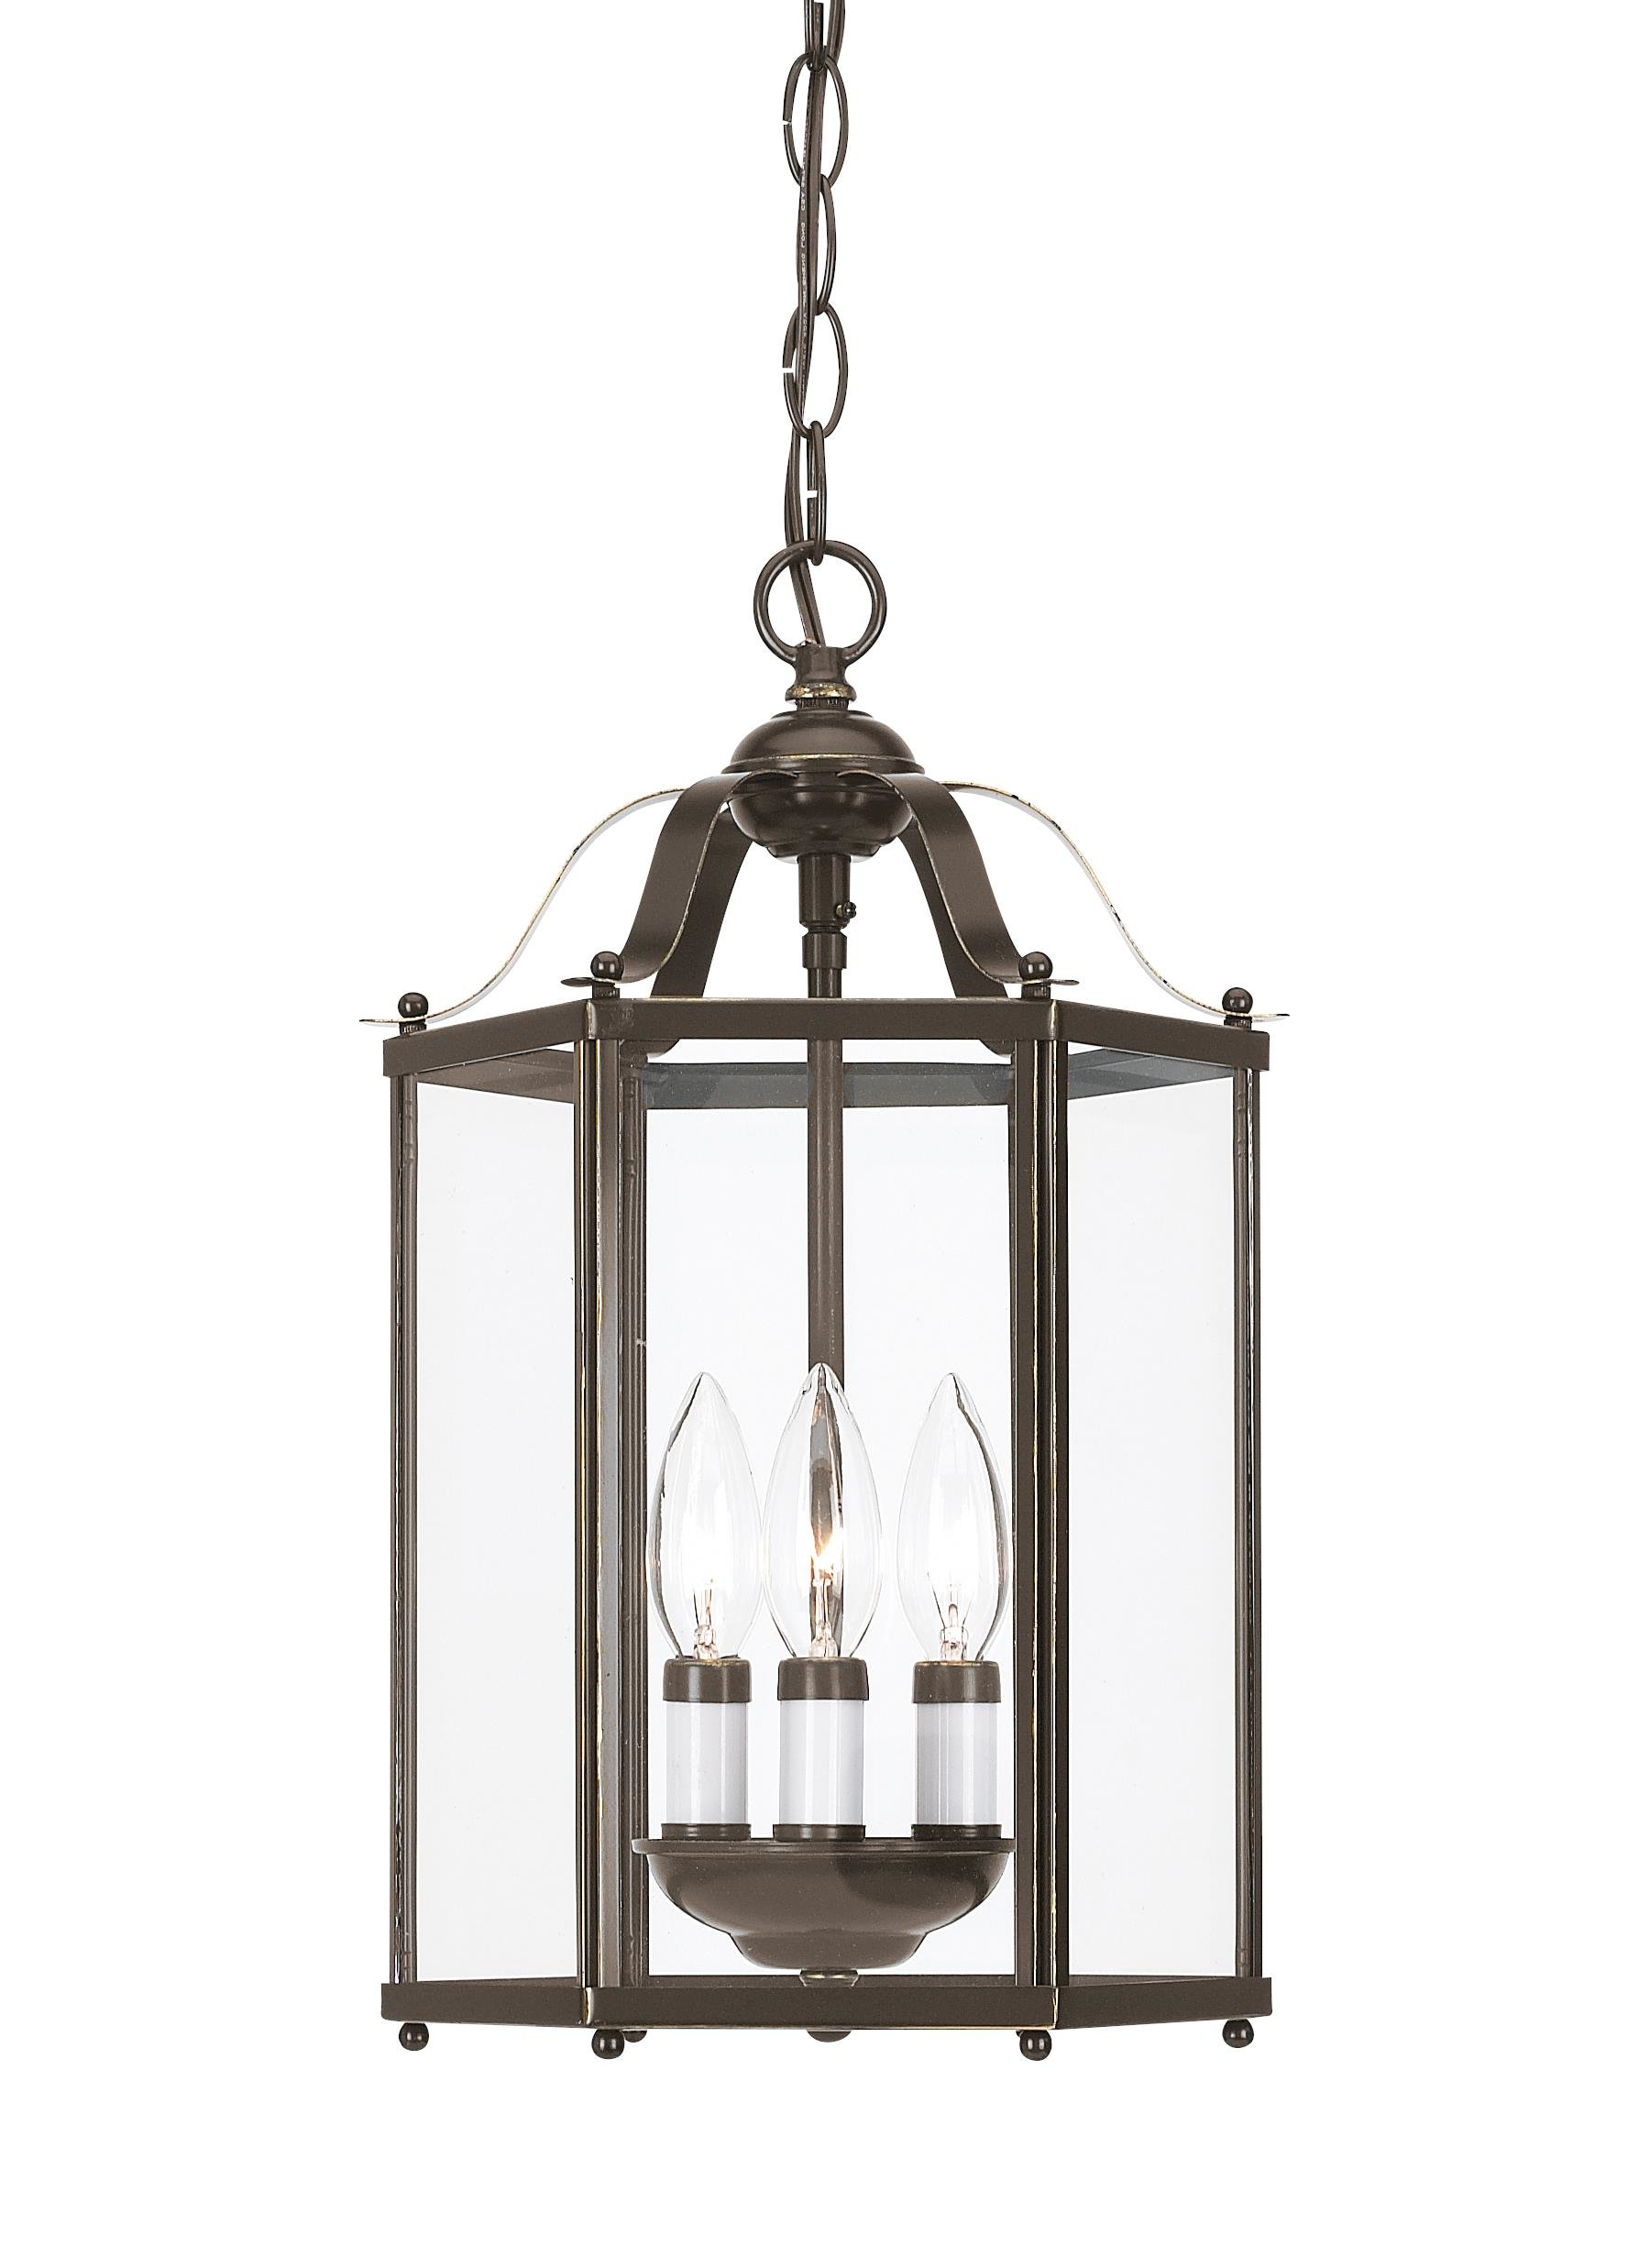 Famous Pinecrest 3 Light Lantern Geometric Pendant Throughout Leiters 3 Light Lantern Geometric Pendants (View 6 of 20)